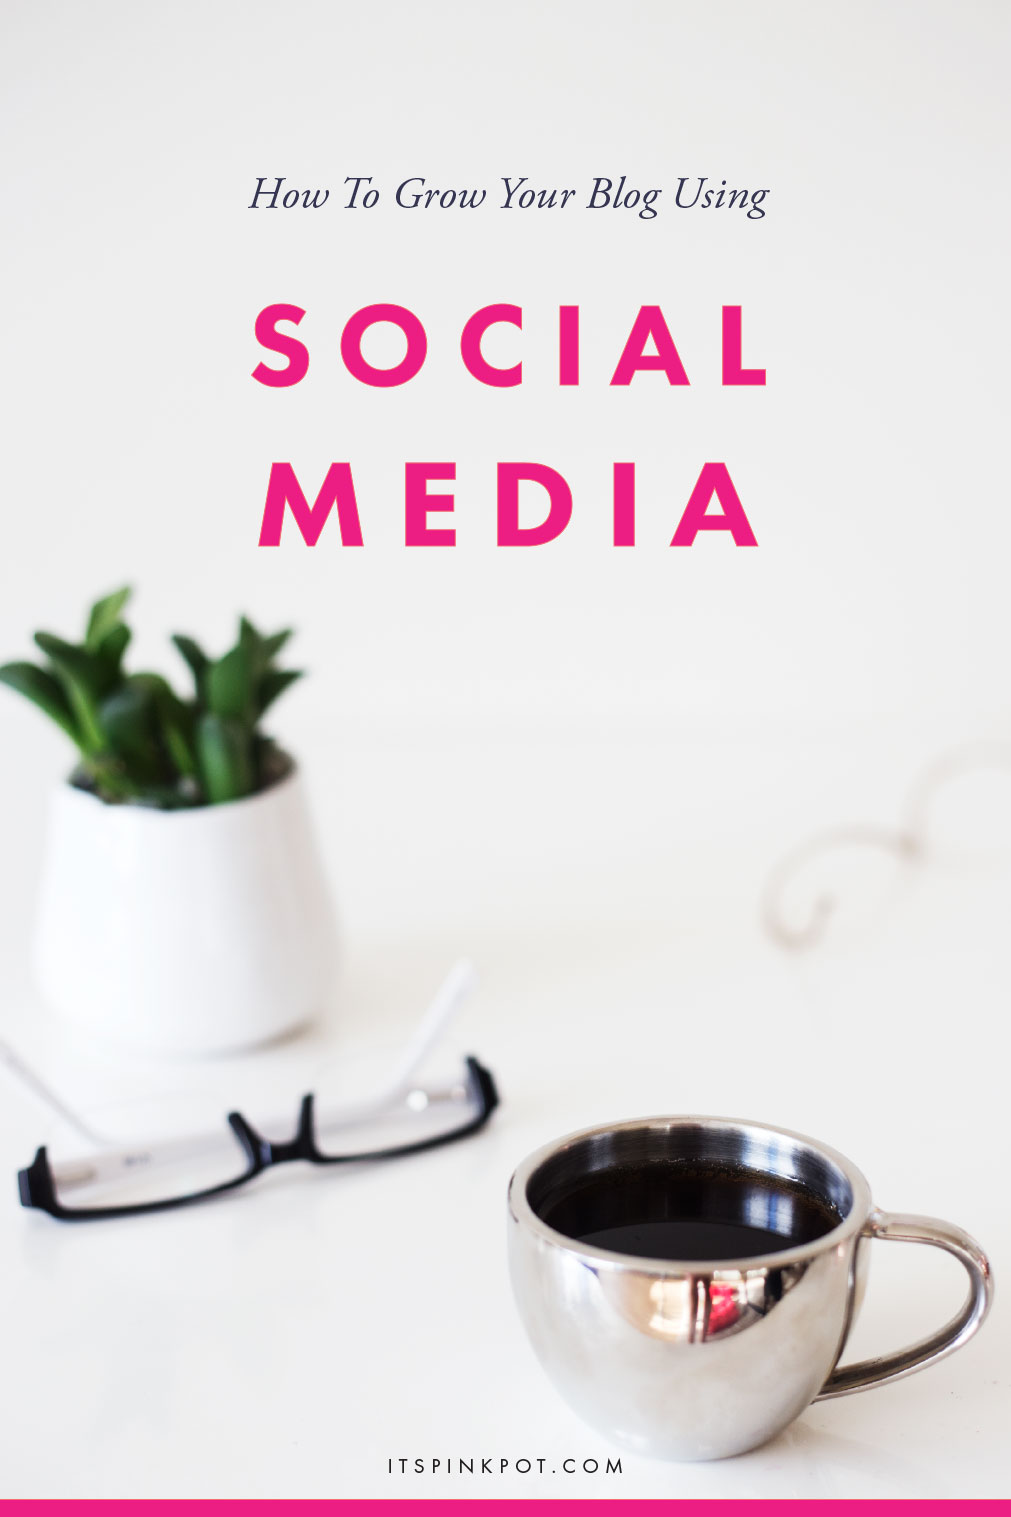 Want to grow your blog? Use social media. Here are my tips to incresae your blog's growth and enagagement using social media like twitter, bloglovin, instagram etc.